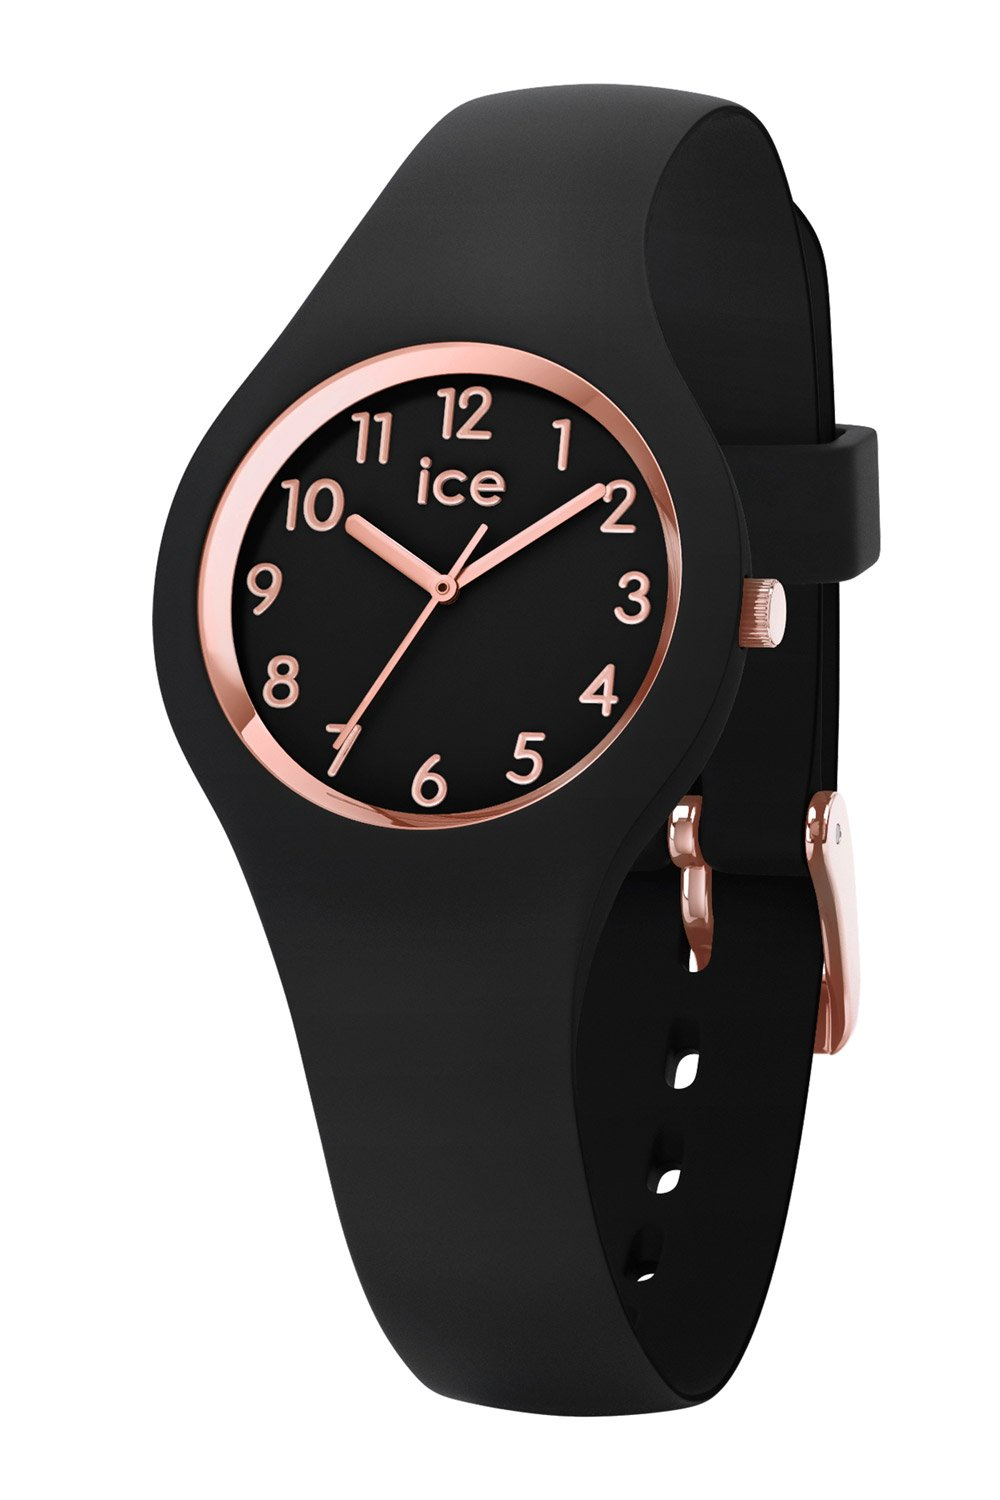 bei Uhrcenter: Ice-Watch 015344 Damenuhr Ice Glam Schwarz/Roségold XS - Damenuhr